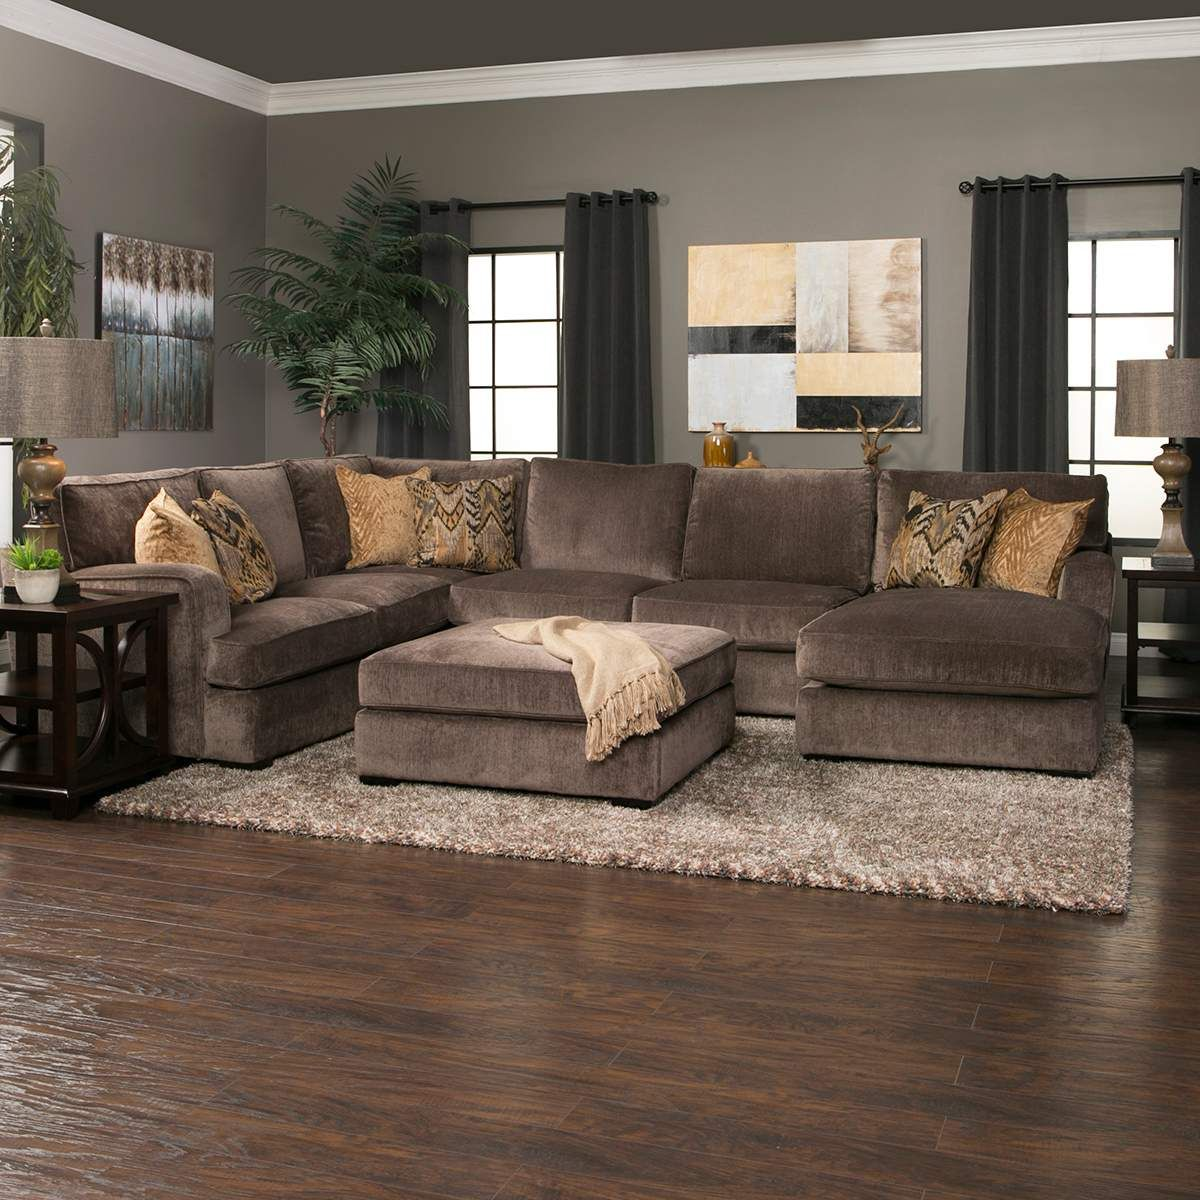 Best When It S Time To Unwind The Teddy 3 Piece Sectional Will 400 x 300